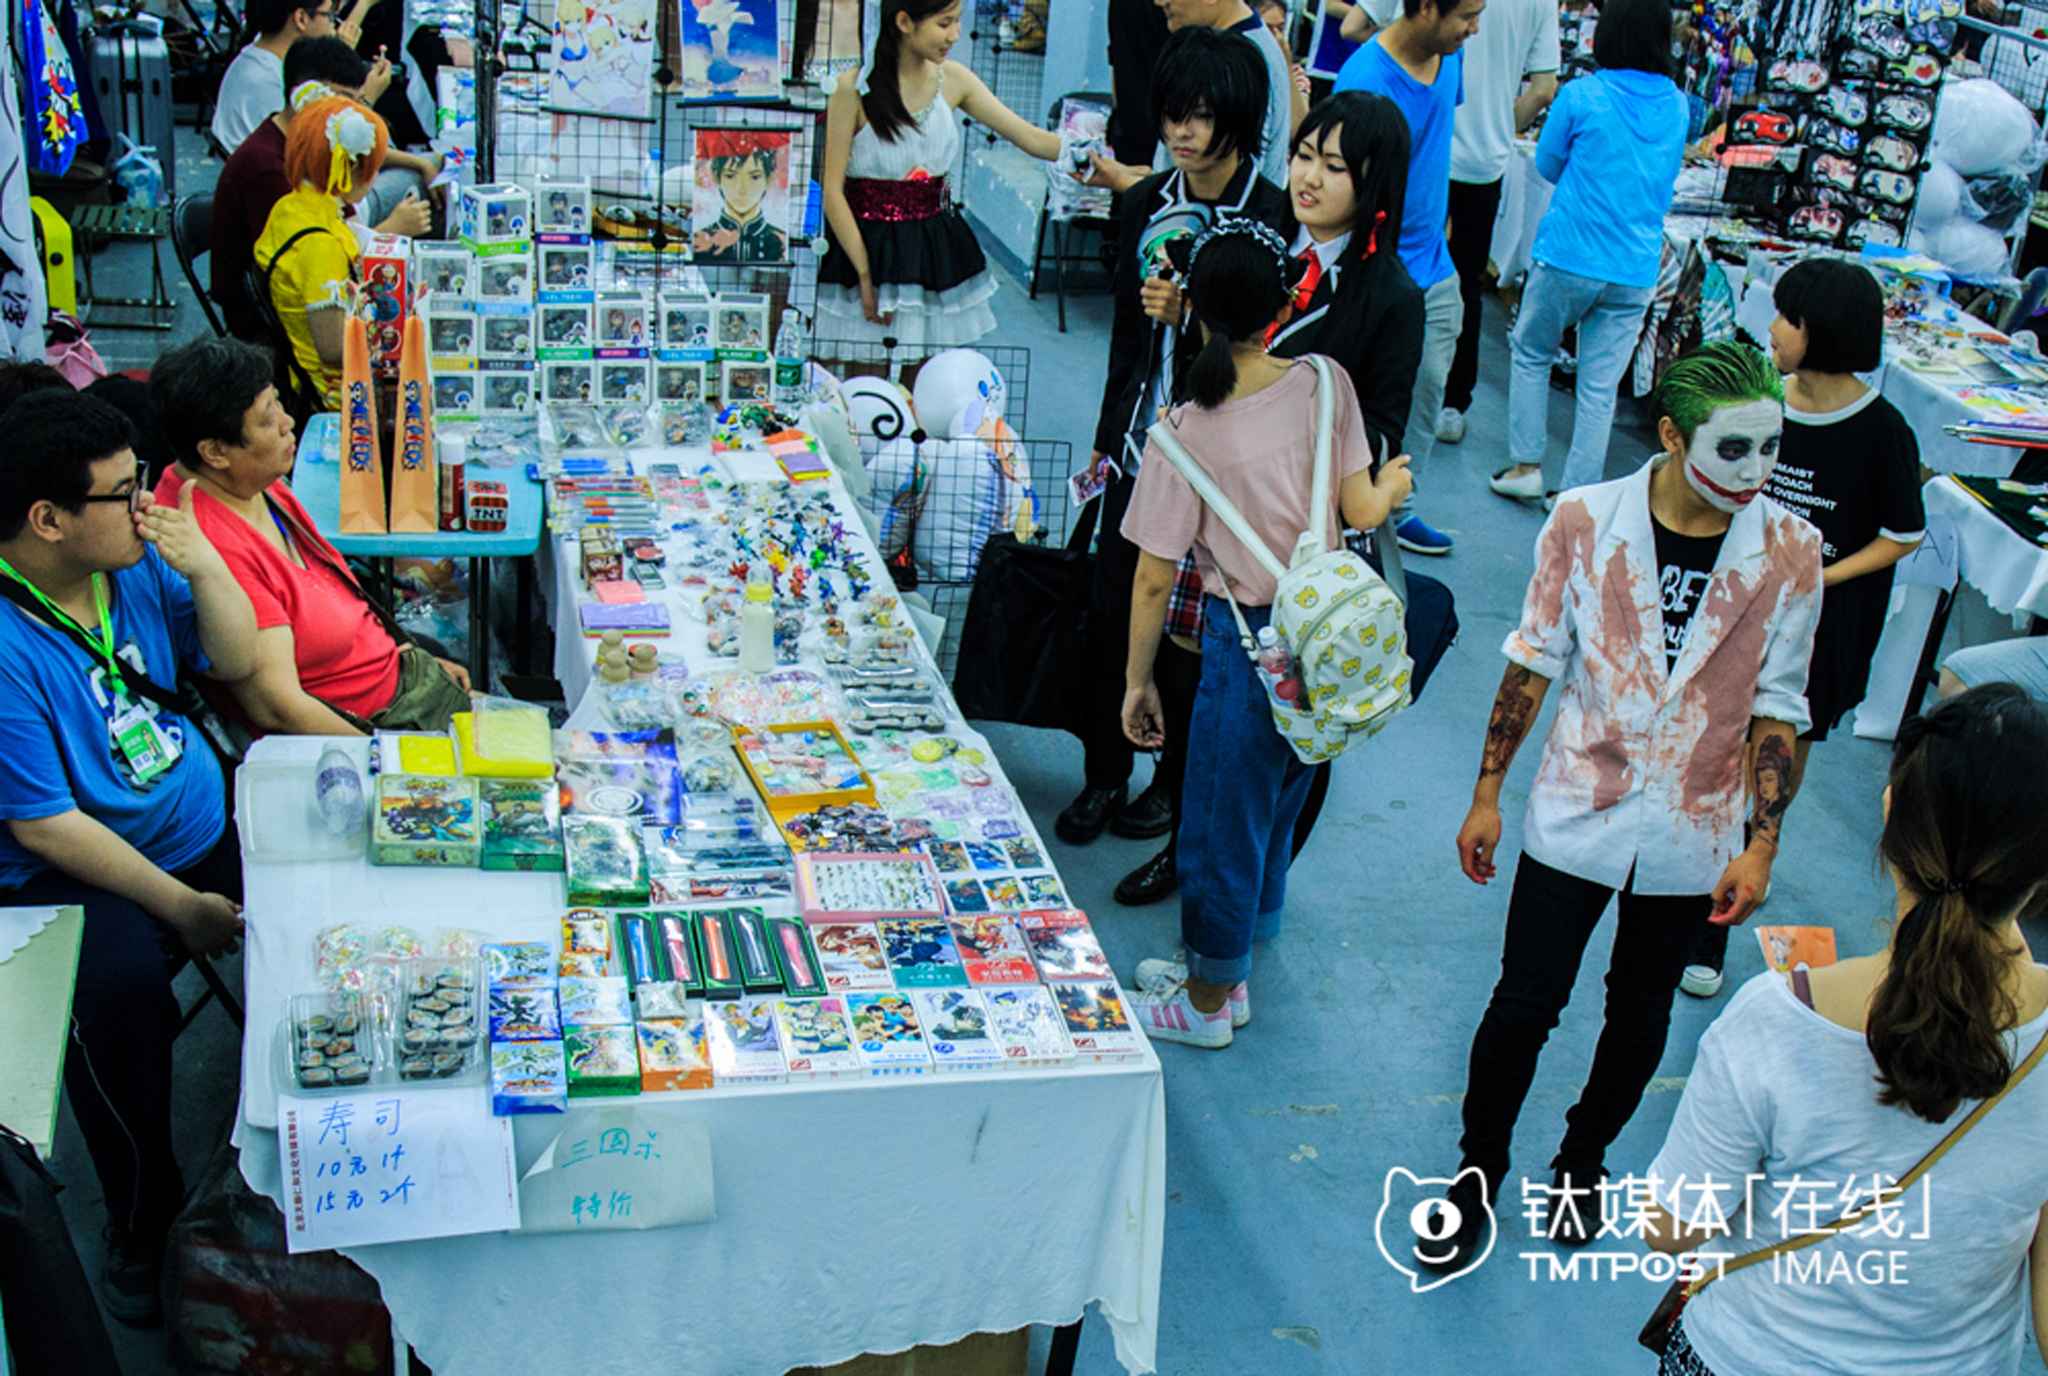 "Most of the 100 stands on the Dream Comic Show were rented by cosers who sold hand-made ""weapons"", models, cards or posters. They had to pay RMB 150 for the stand every day, and kept of rest of what they earned to keep their cosplay habit."